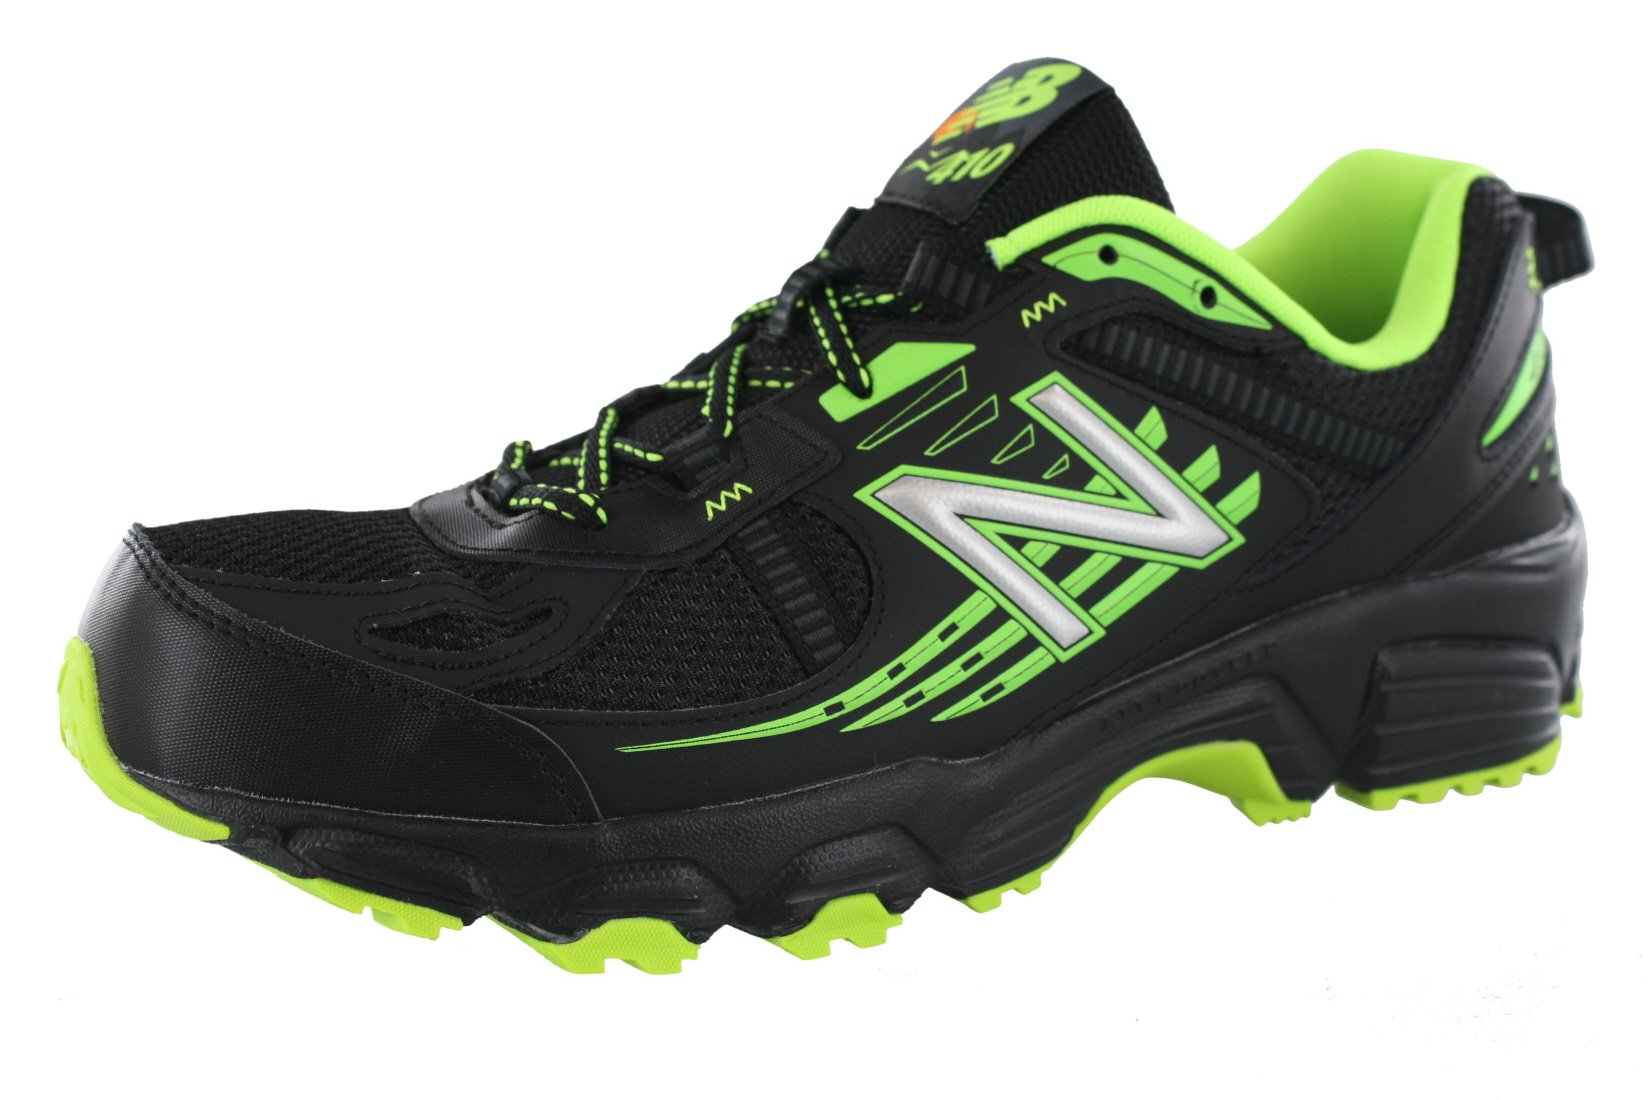 New Balance Men's, 410v4 Trail Running Shoes Black Lime 9.5 4E